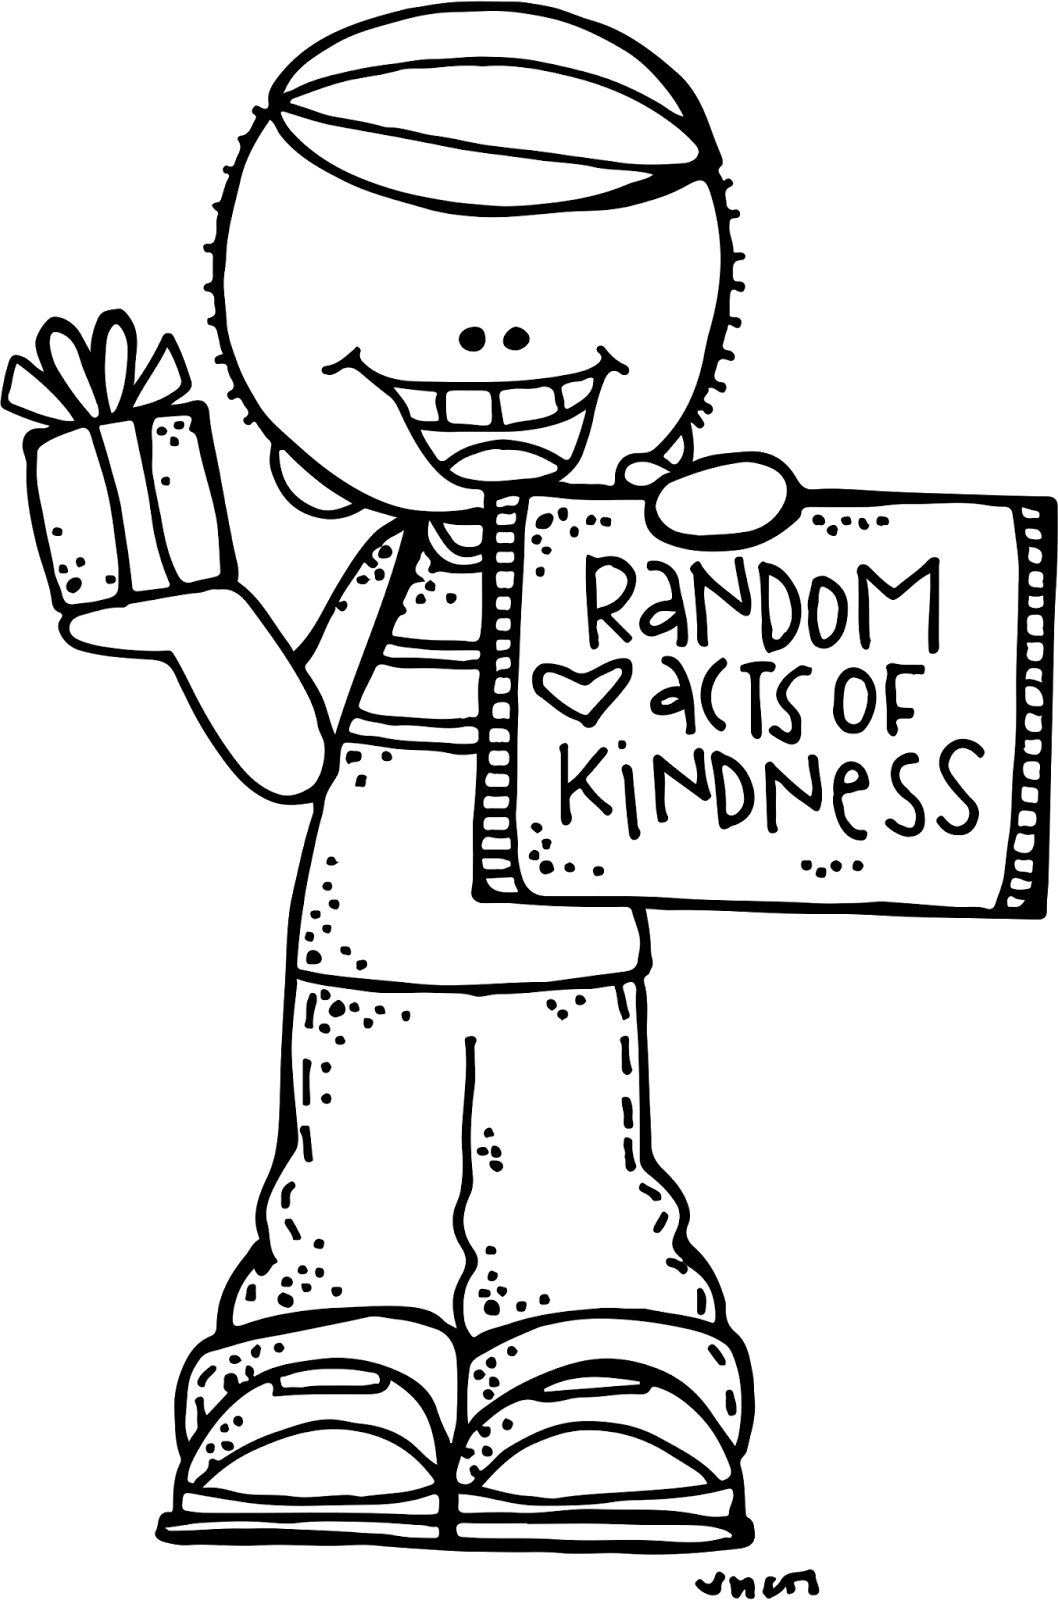 Kind clipart black and white, Kind black and white.